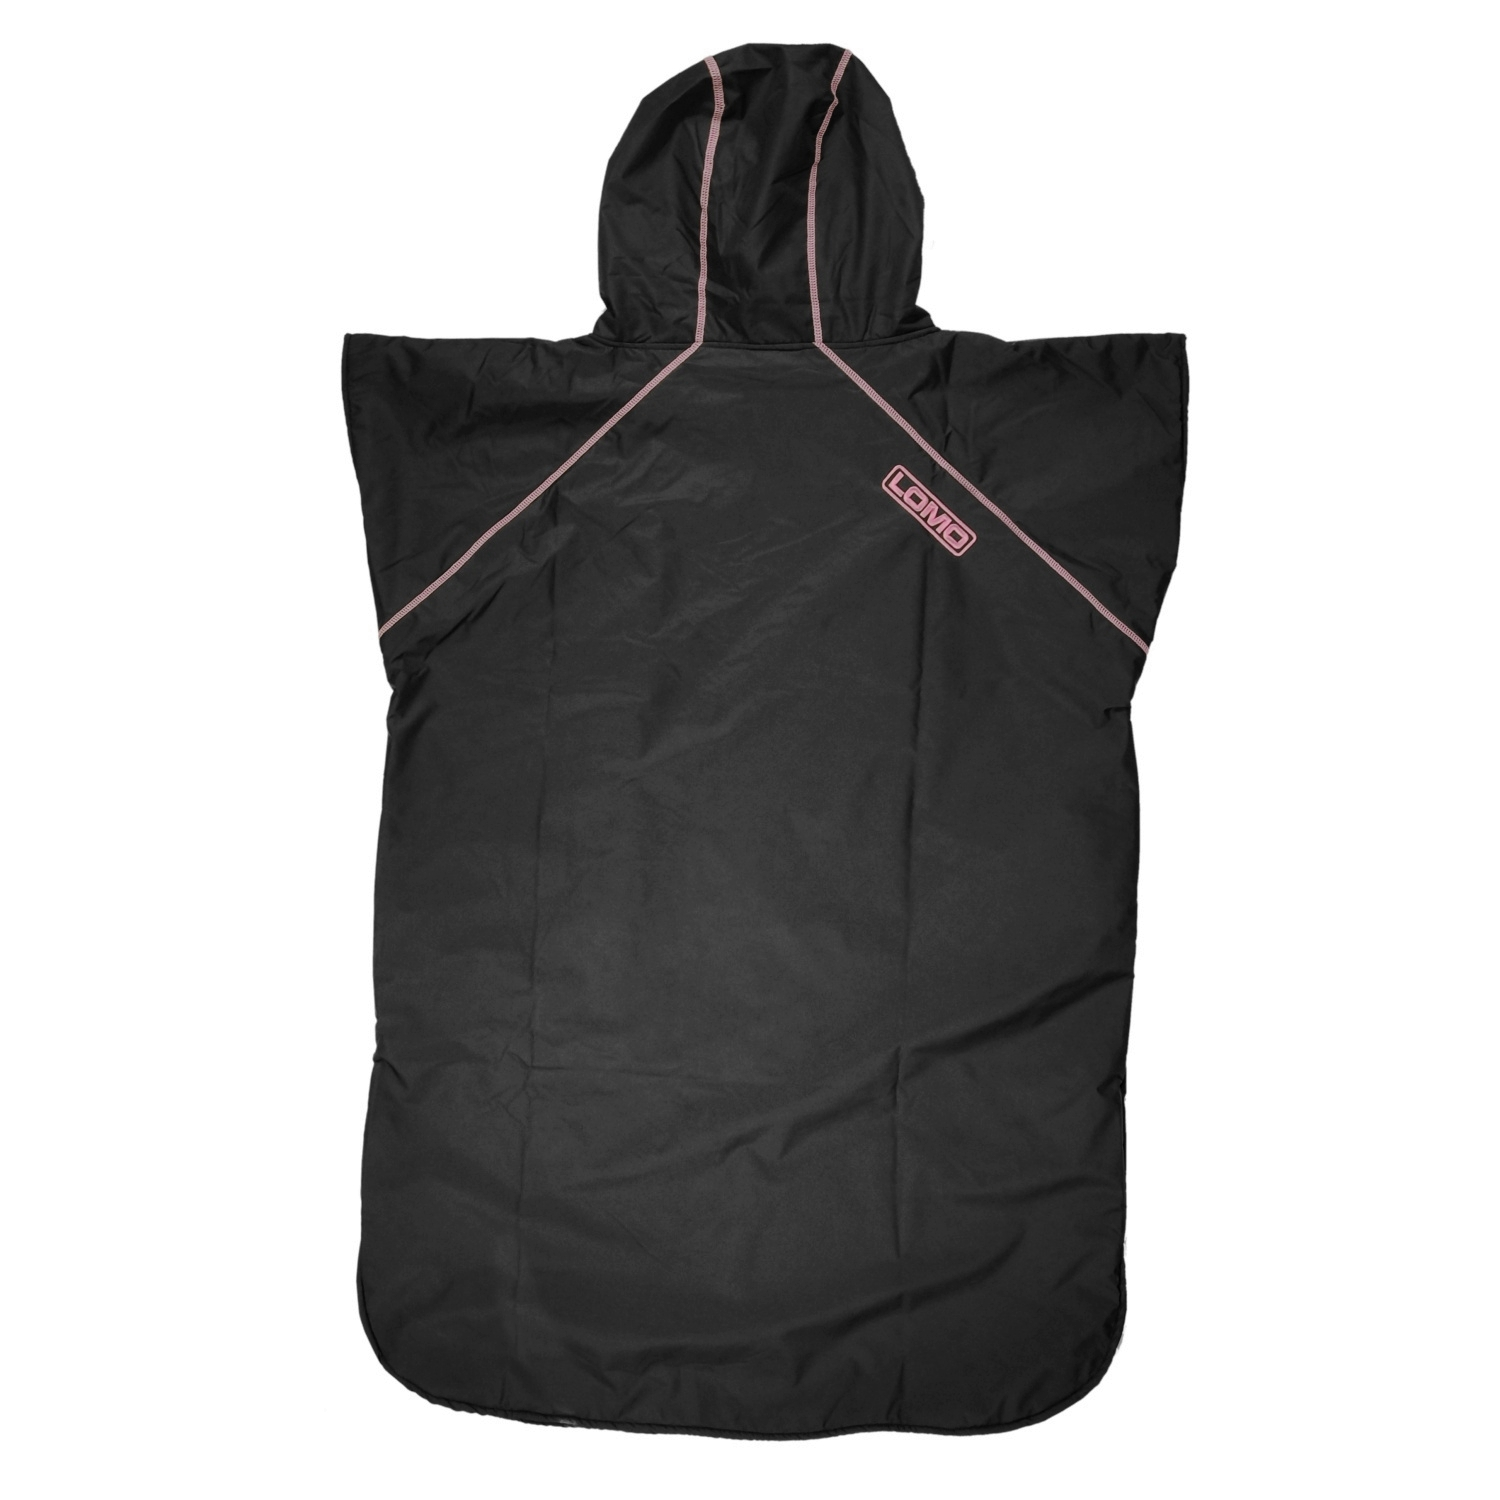 adc504ab40 Swimming Changing Robe - Front View Swimming Changing Robe - Back View ...